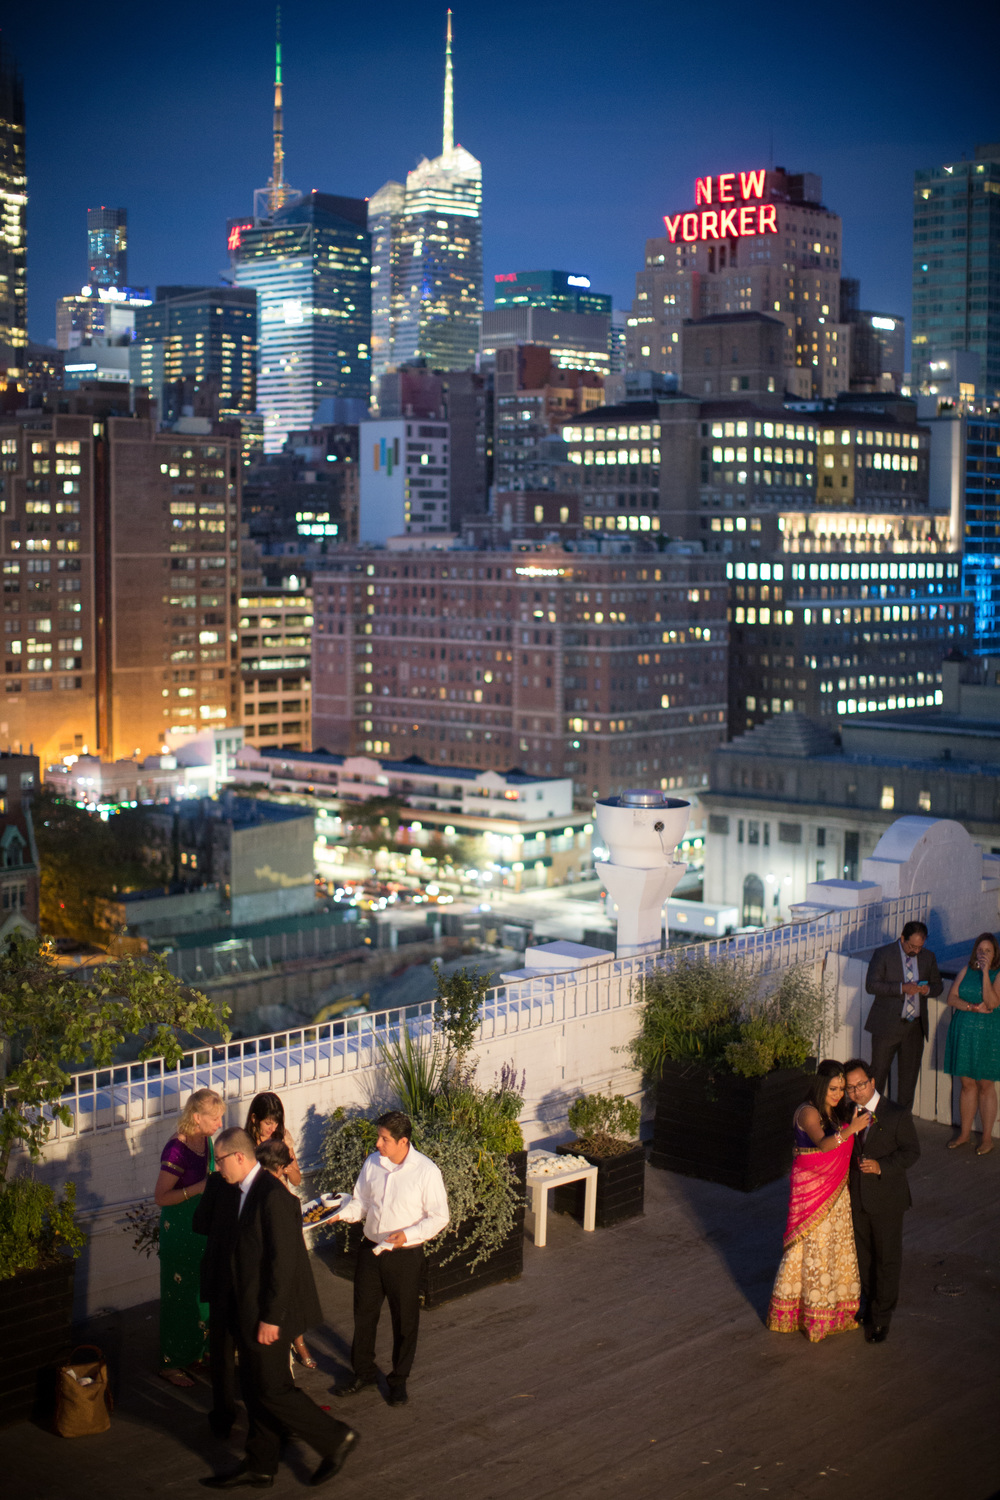 The beautiful rooftop venue is none other than  Studio 450 , a  unique New York City Loft Space and terrace located in Manhattan with incredible skyline views.